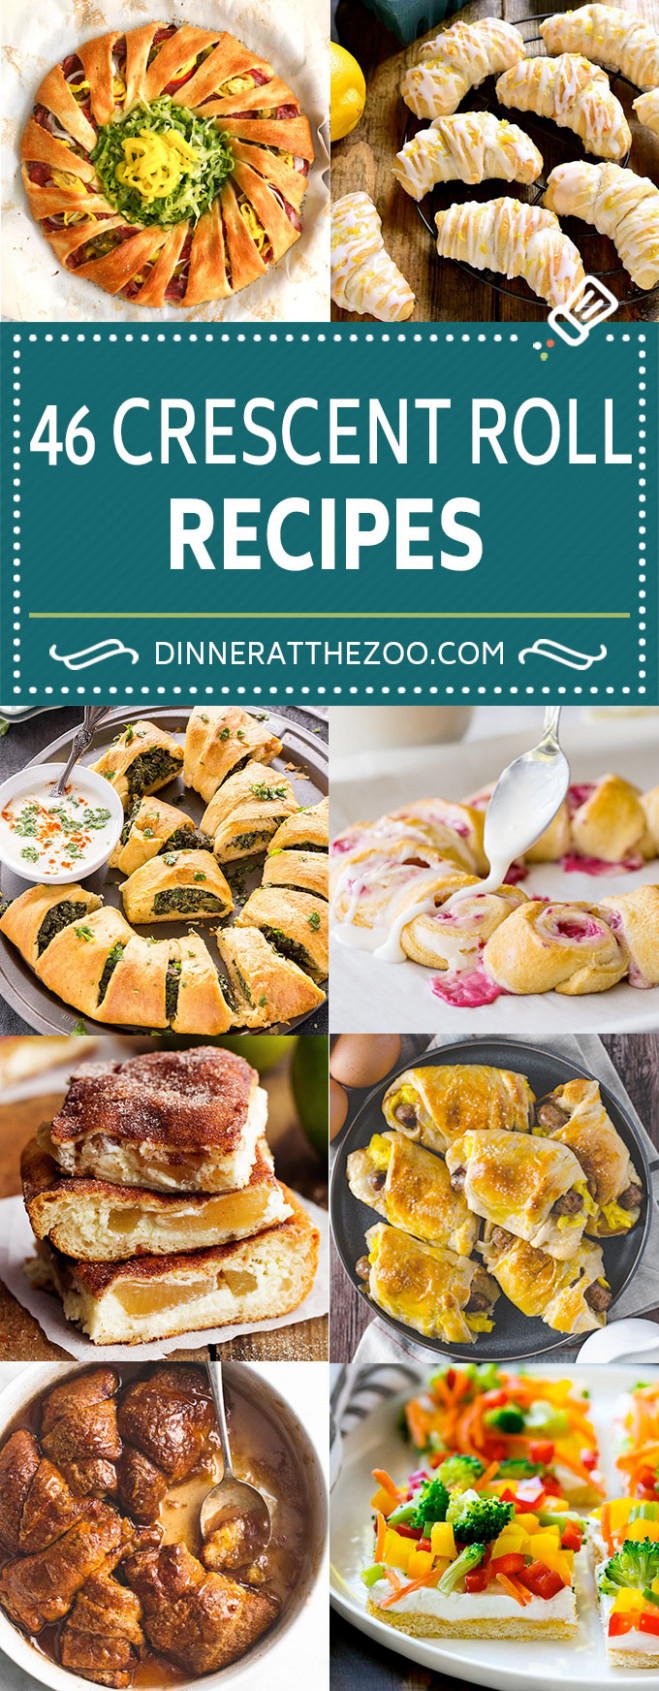 46 Crescent Roll Recipes - Dinner at the Zoo